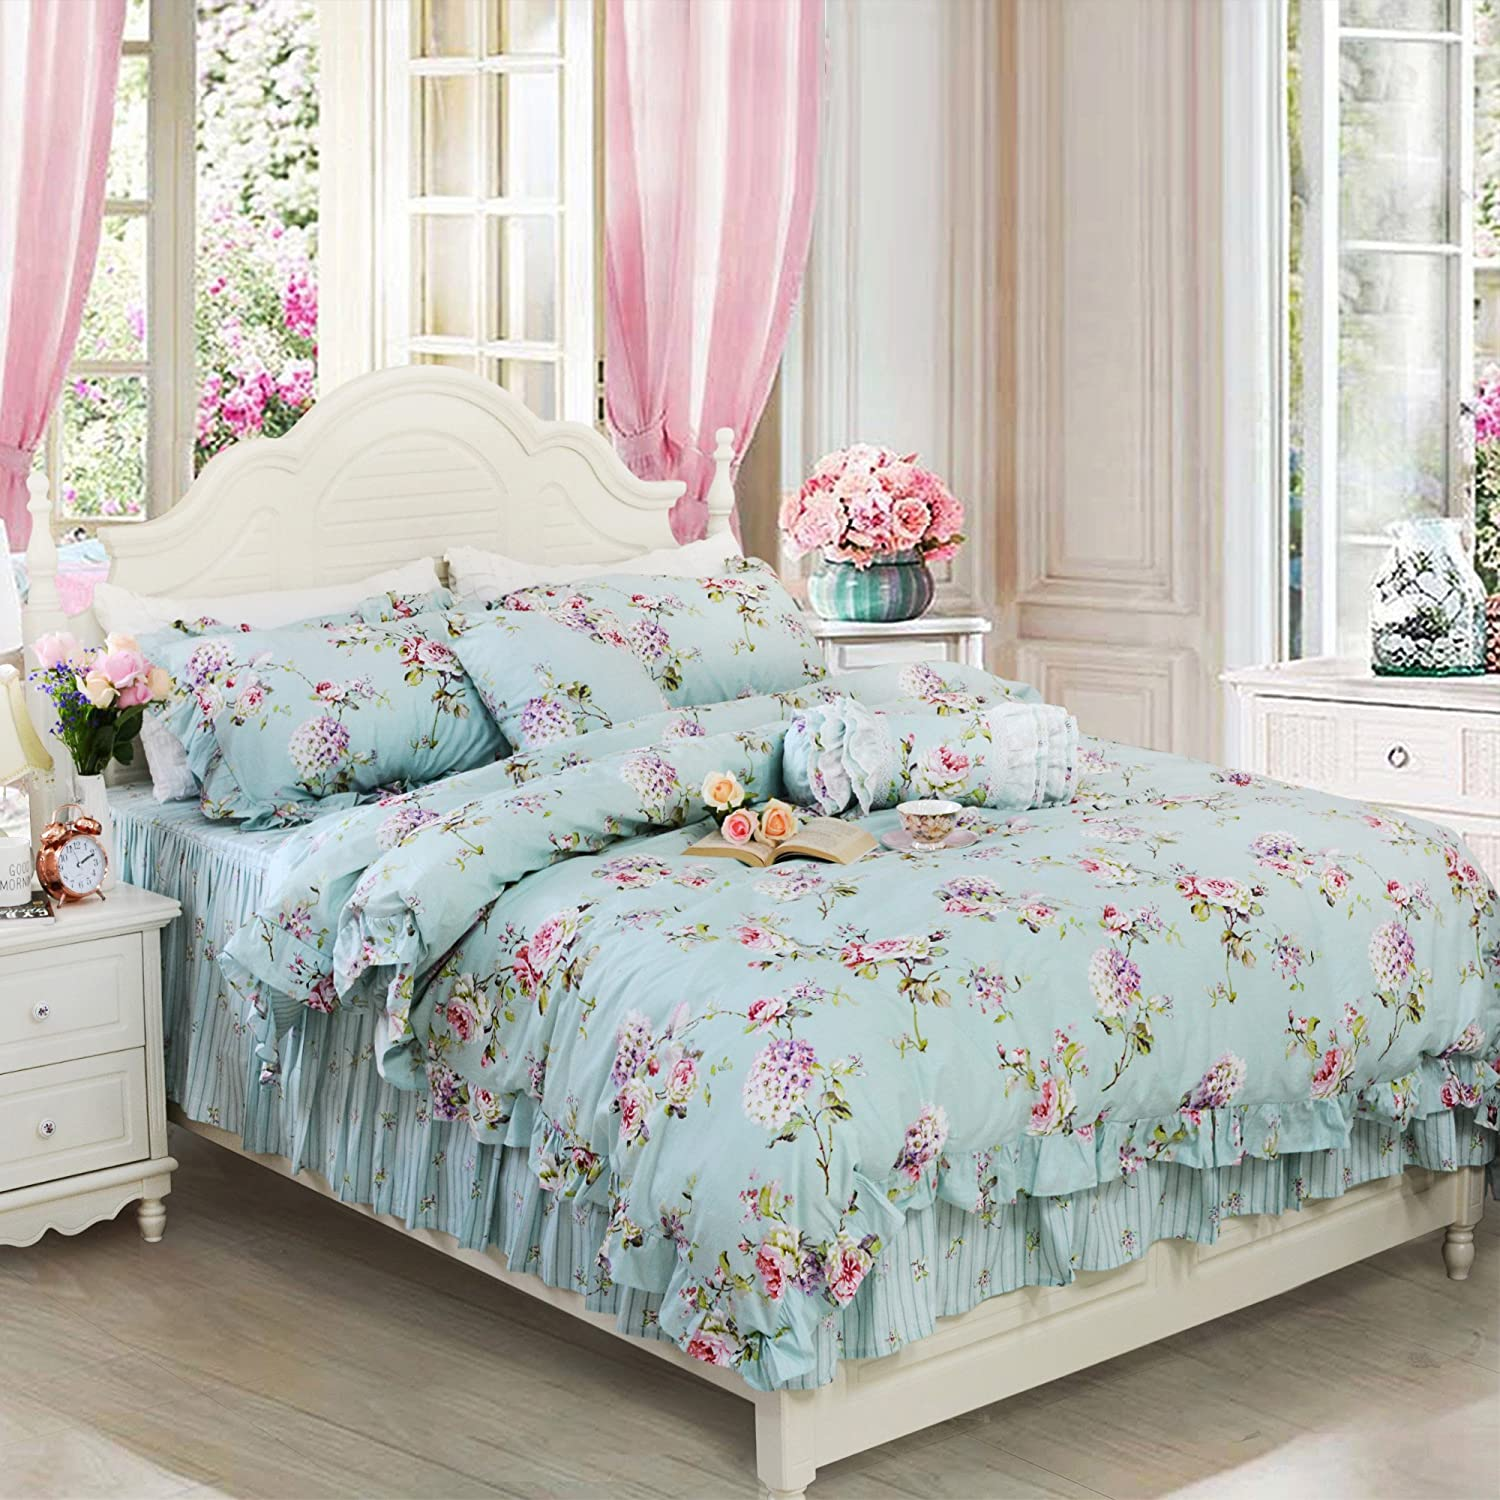 FADFAY Farmhouse Bedding Shabby Blue Floral Vintage Floral Print Duvet Cover Set Striped Bedspread Elegant French Country Style with Ruffle 4 Pcs King Size